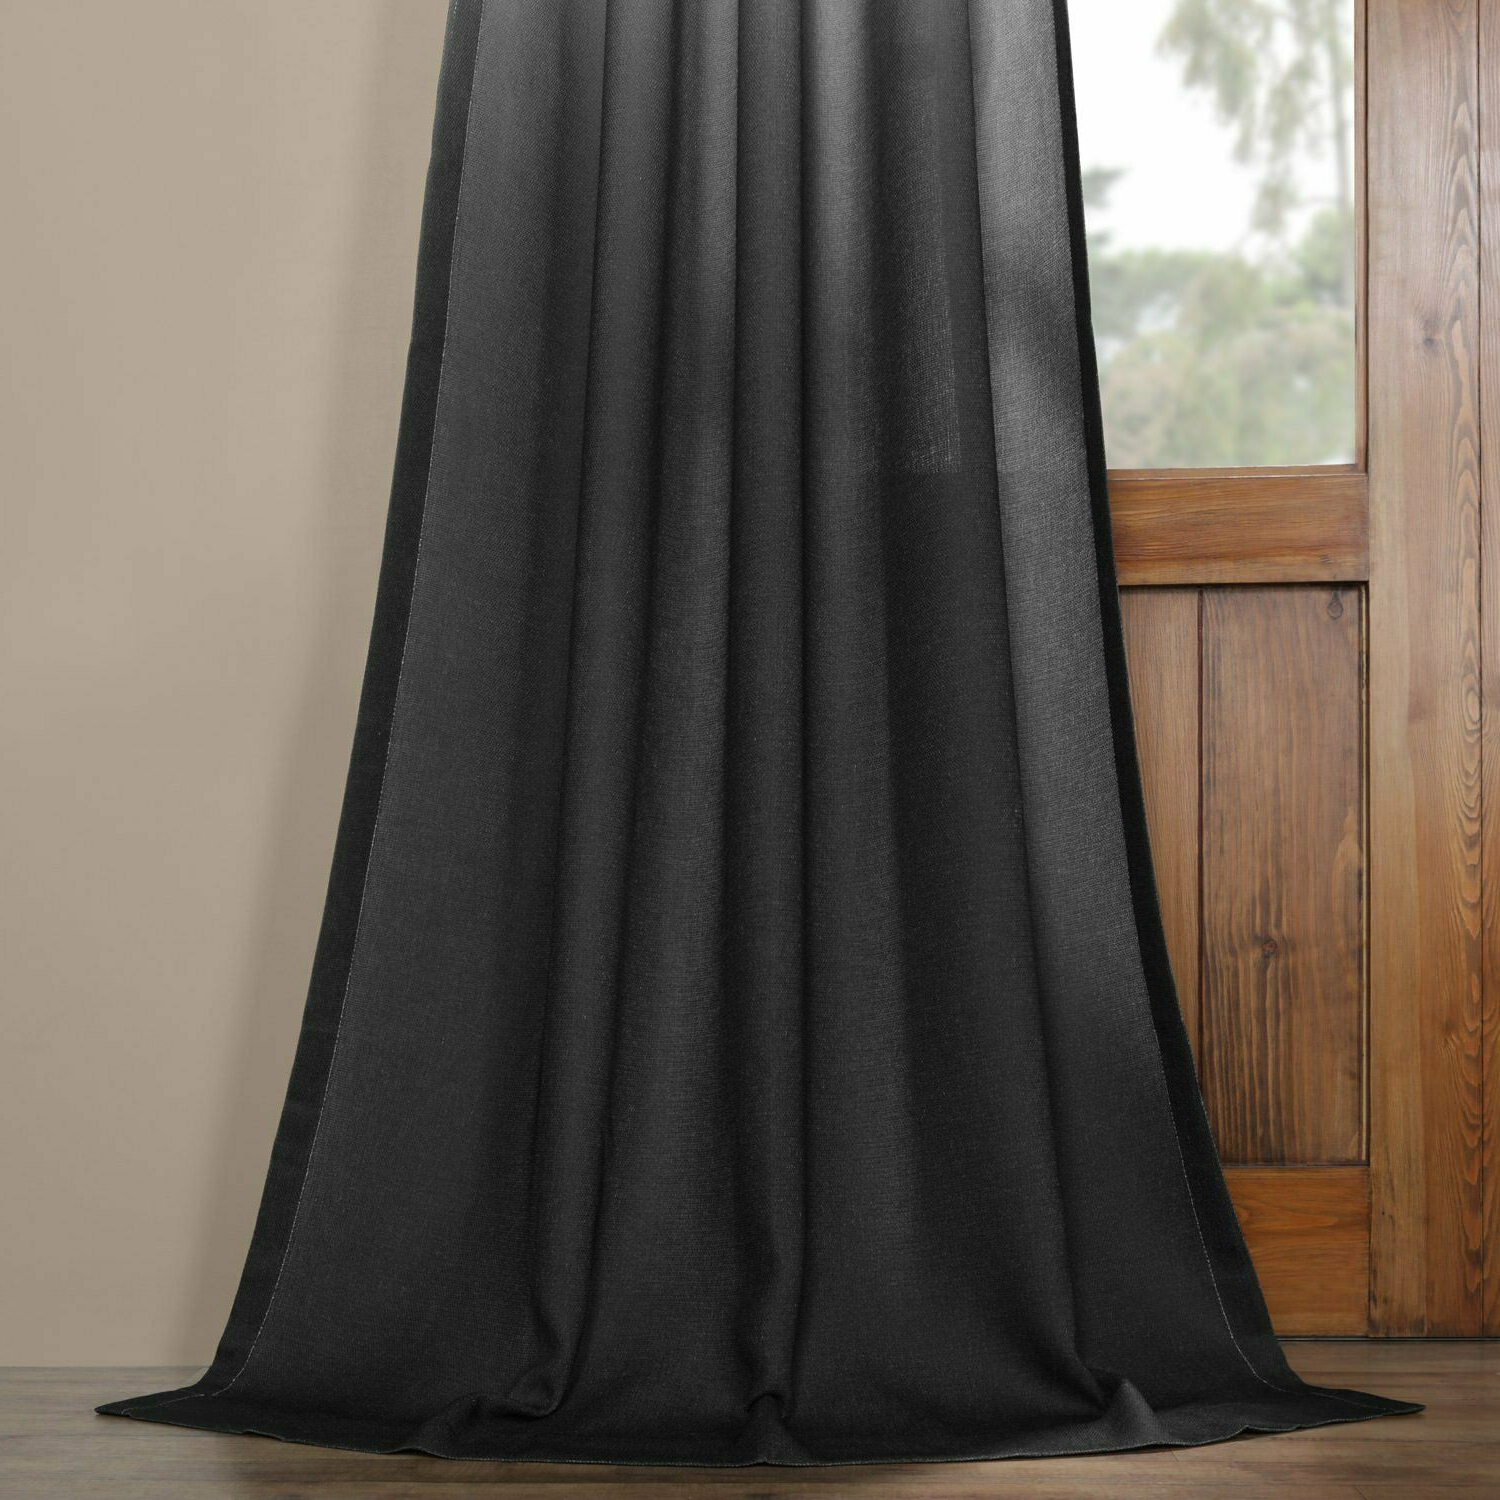 "Most Recently Released Ombre Faux Linen Semi Sheer Curtain Black 50 X 84 3"" Pole Pocket With Hook  Belt With Ombre Faux Linen Semi Sheer Curtains (Gallery 20 of 20)"